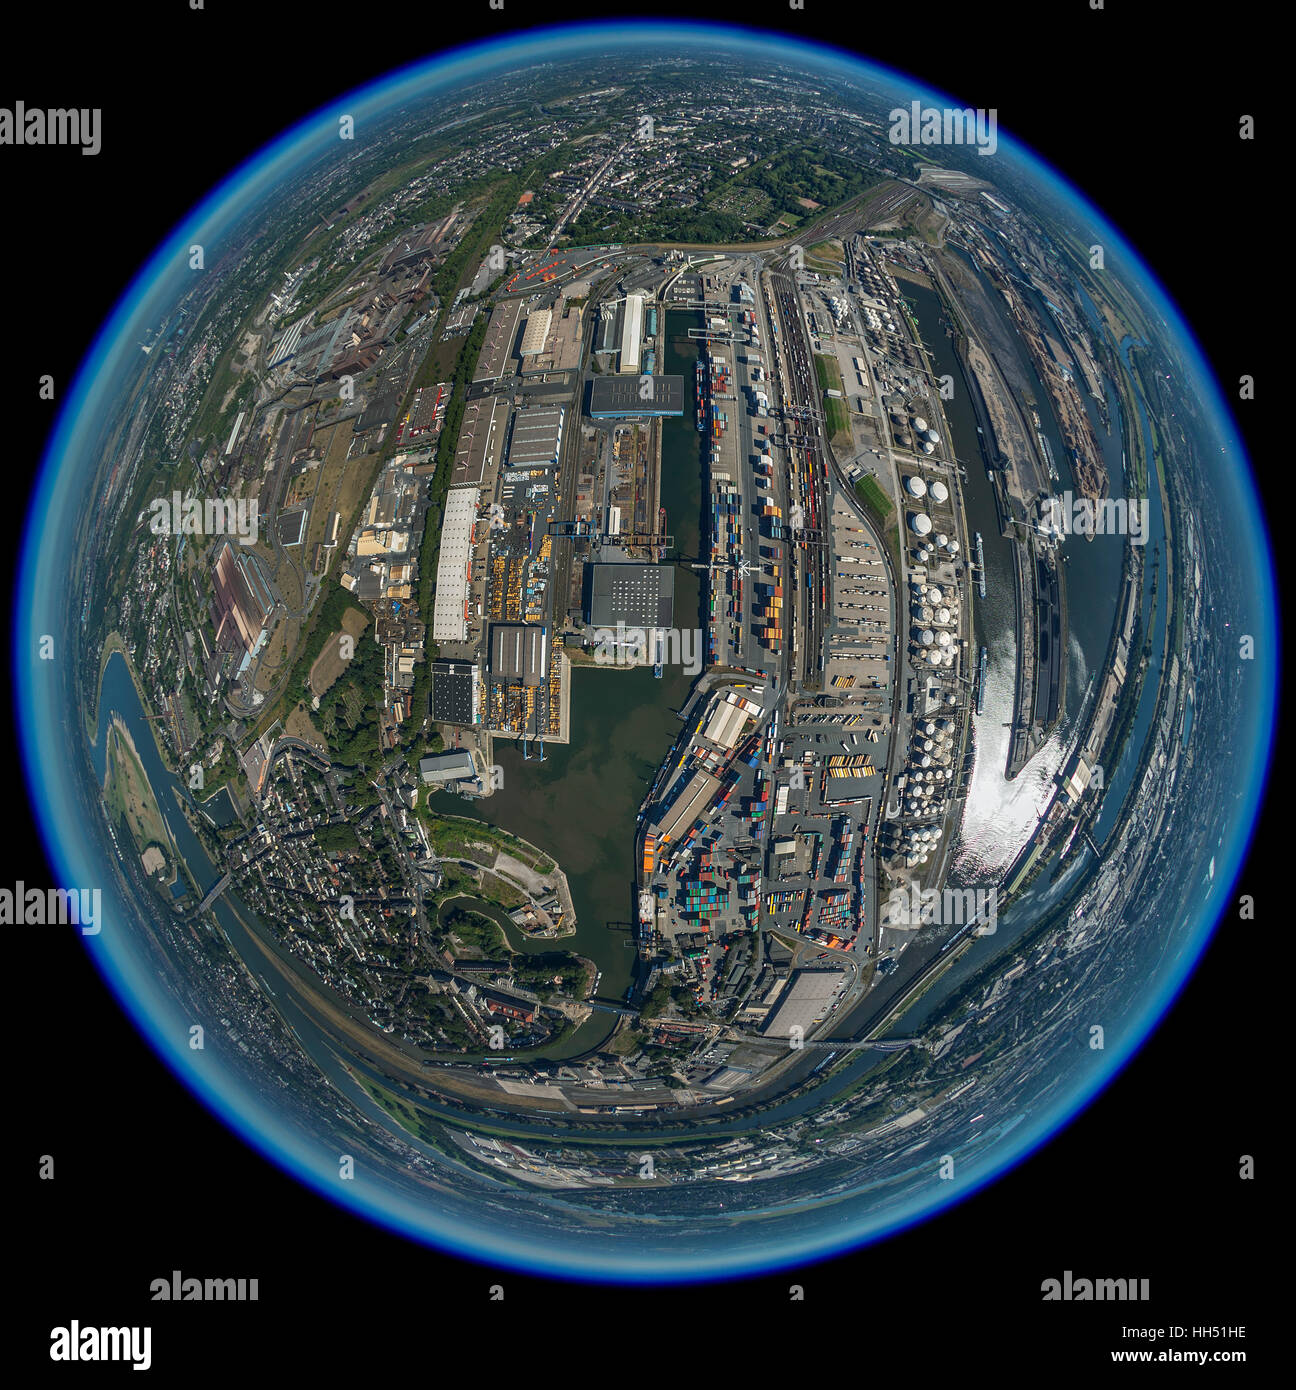 Duisport, inland port of Duisburg, the largest inland port in europe, the Port of Duisburg as a globe, fisheye image, - Stock Image